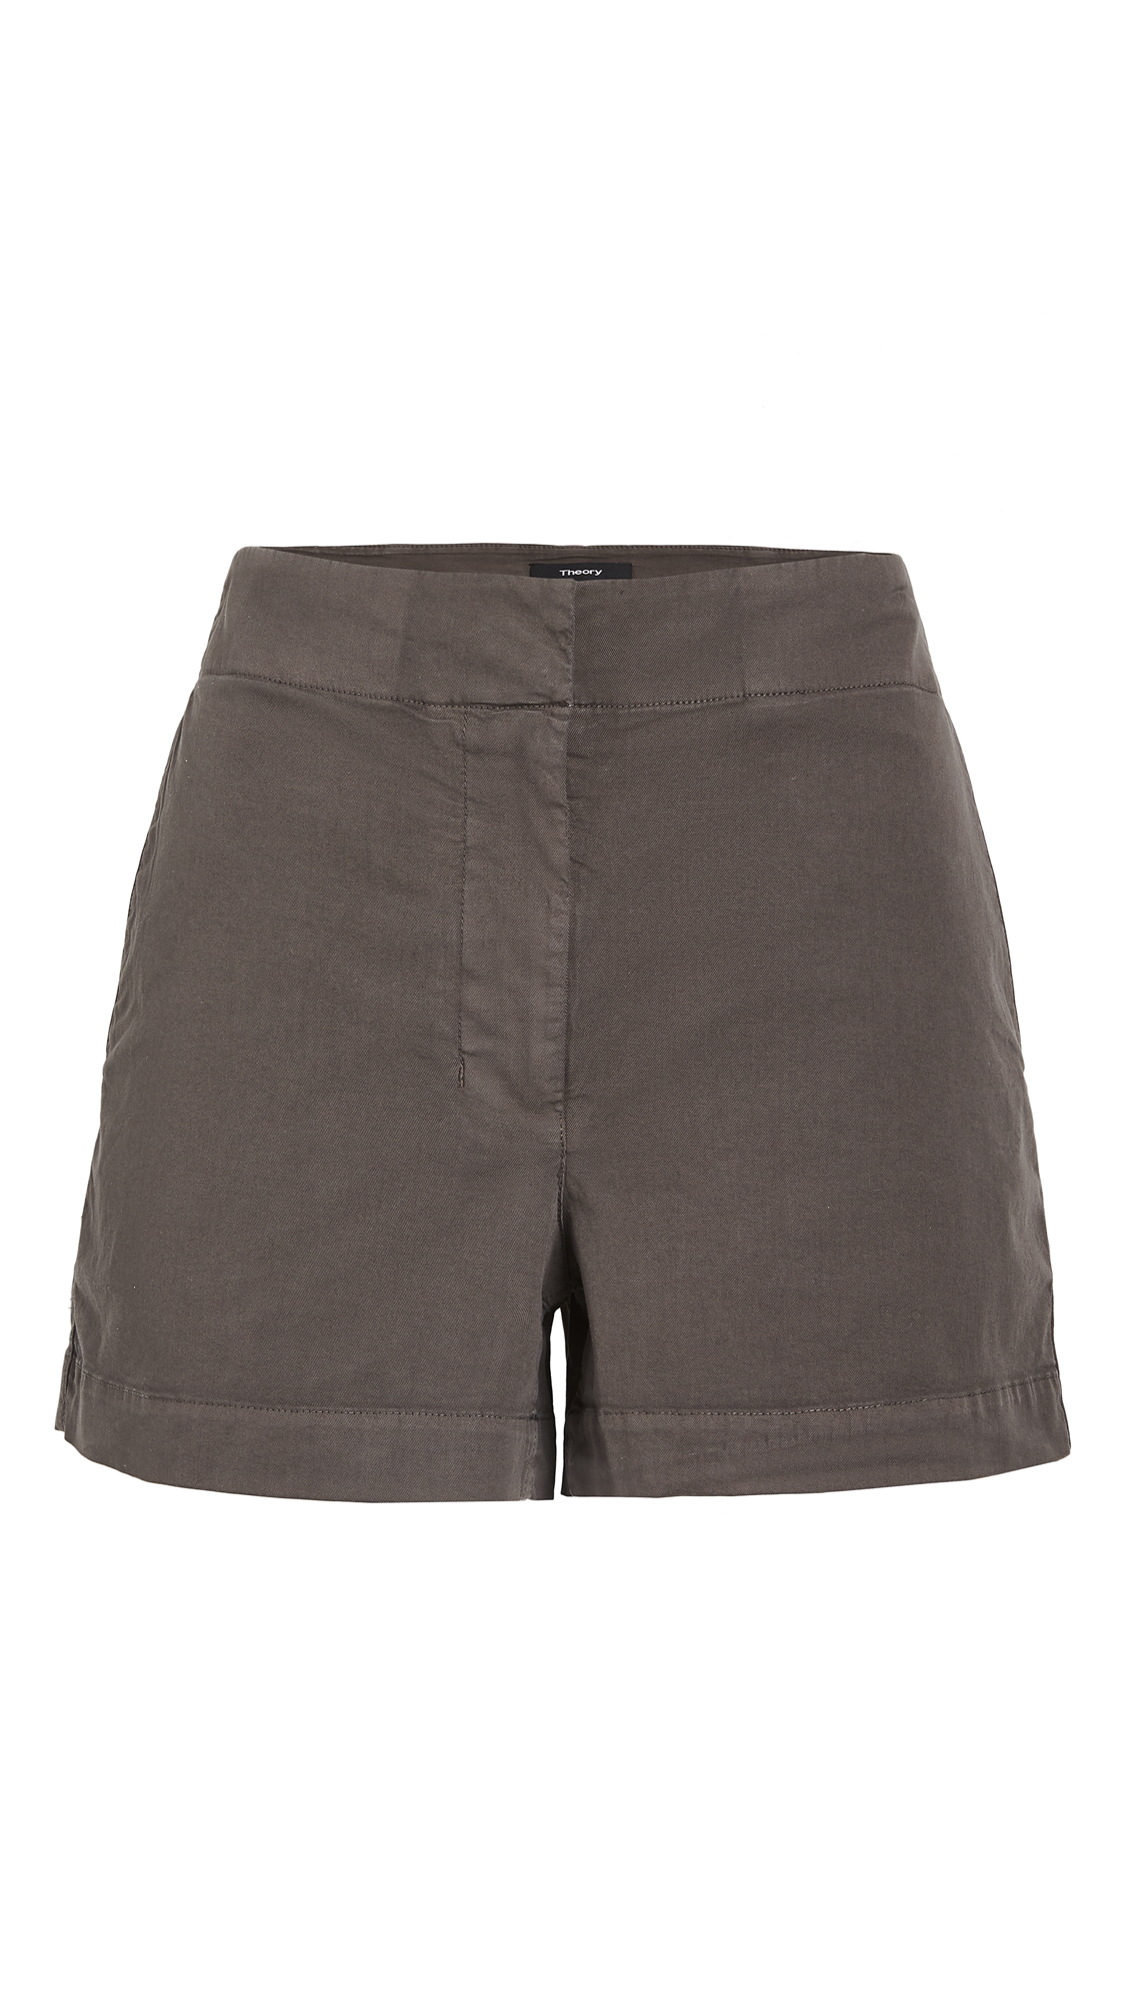 Theory Mini Shorts